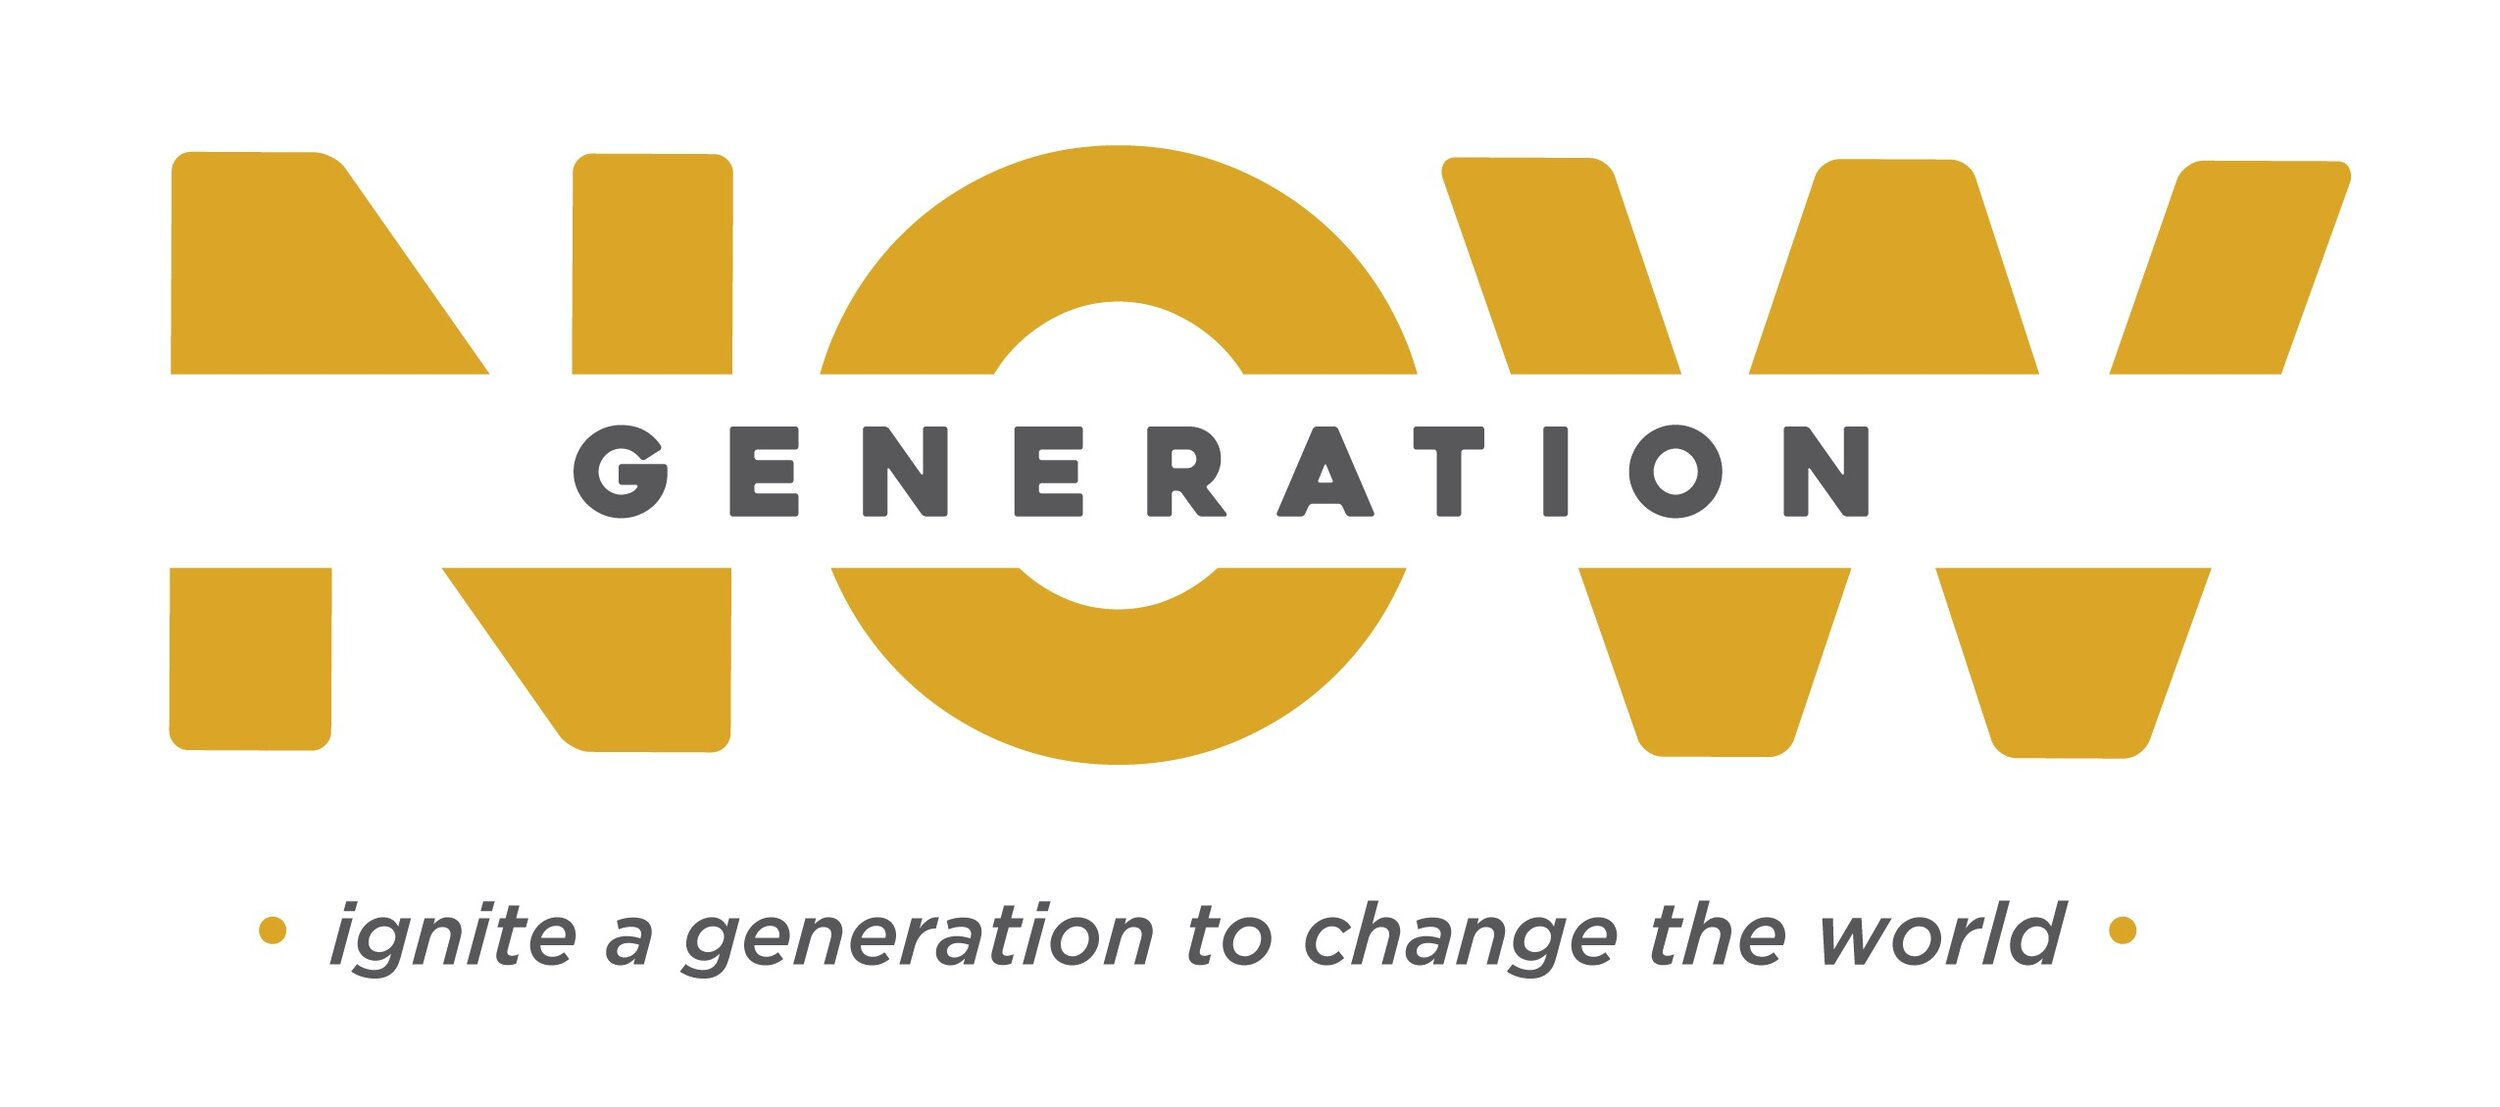 - With their new assignment from God to lead the 4/14 movement, Rick & Becky are now self supported missionaries. If you would like to support them, you can give through their non-profit organization, Generation Now.